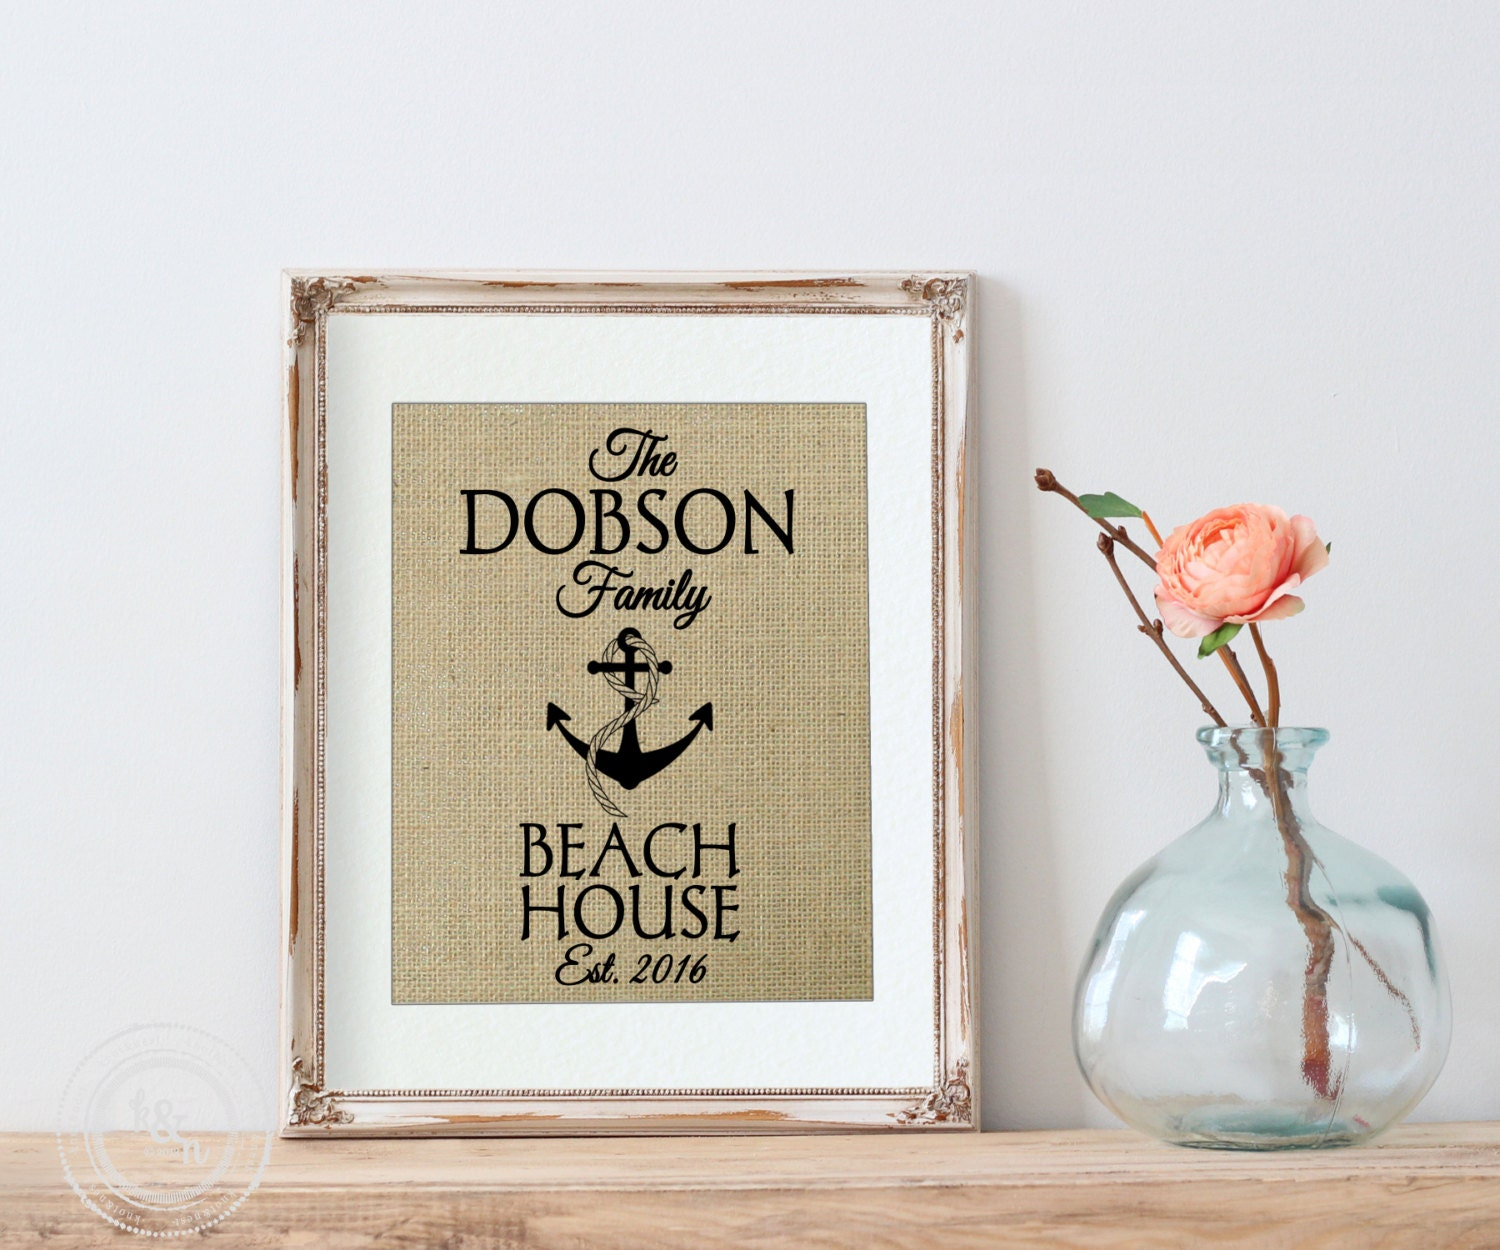 Personalized Beach House Plaques: Personalized Wall Decor For Beach House Burlap Personalized